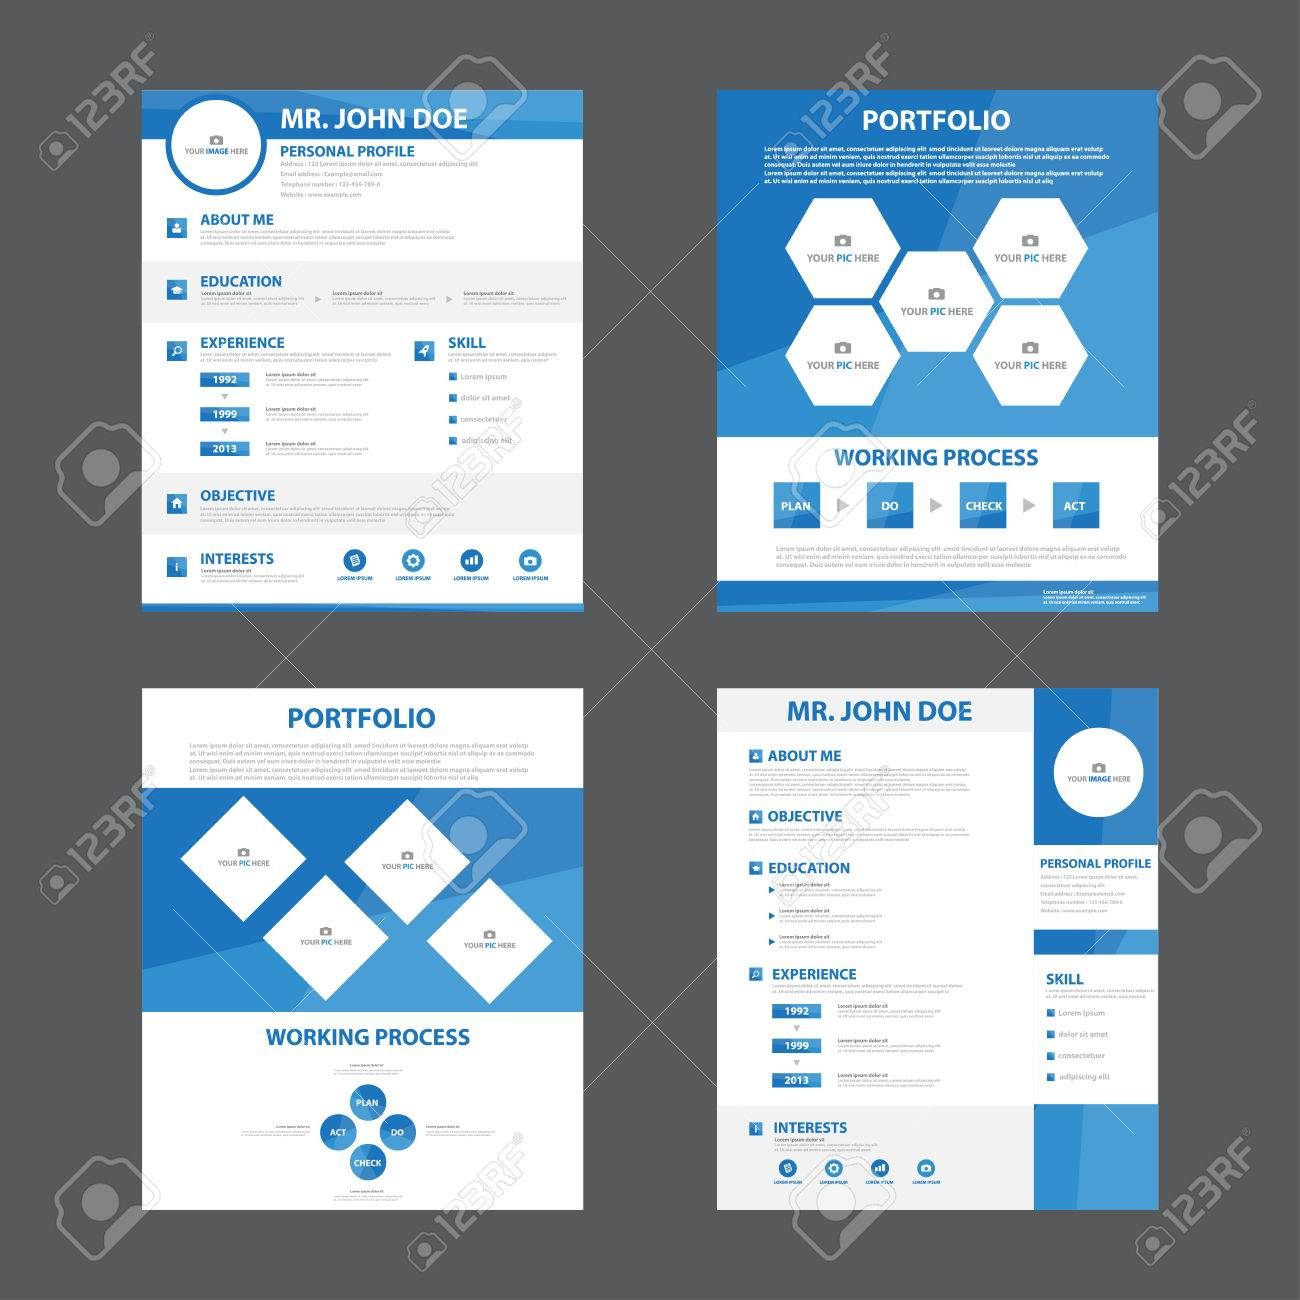 Smart creative resume business profile cv vitae template layout smart creative resume business profile cv vitae template layout flat design for job application advertising marketing accmission Gallery